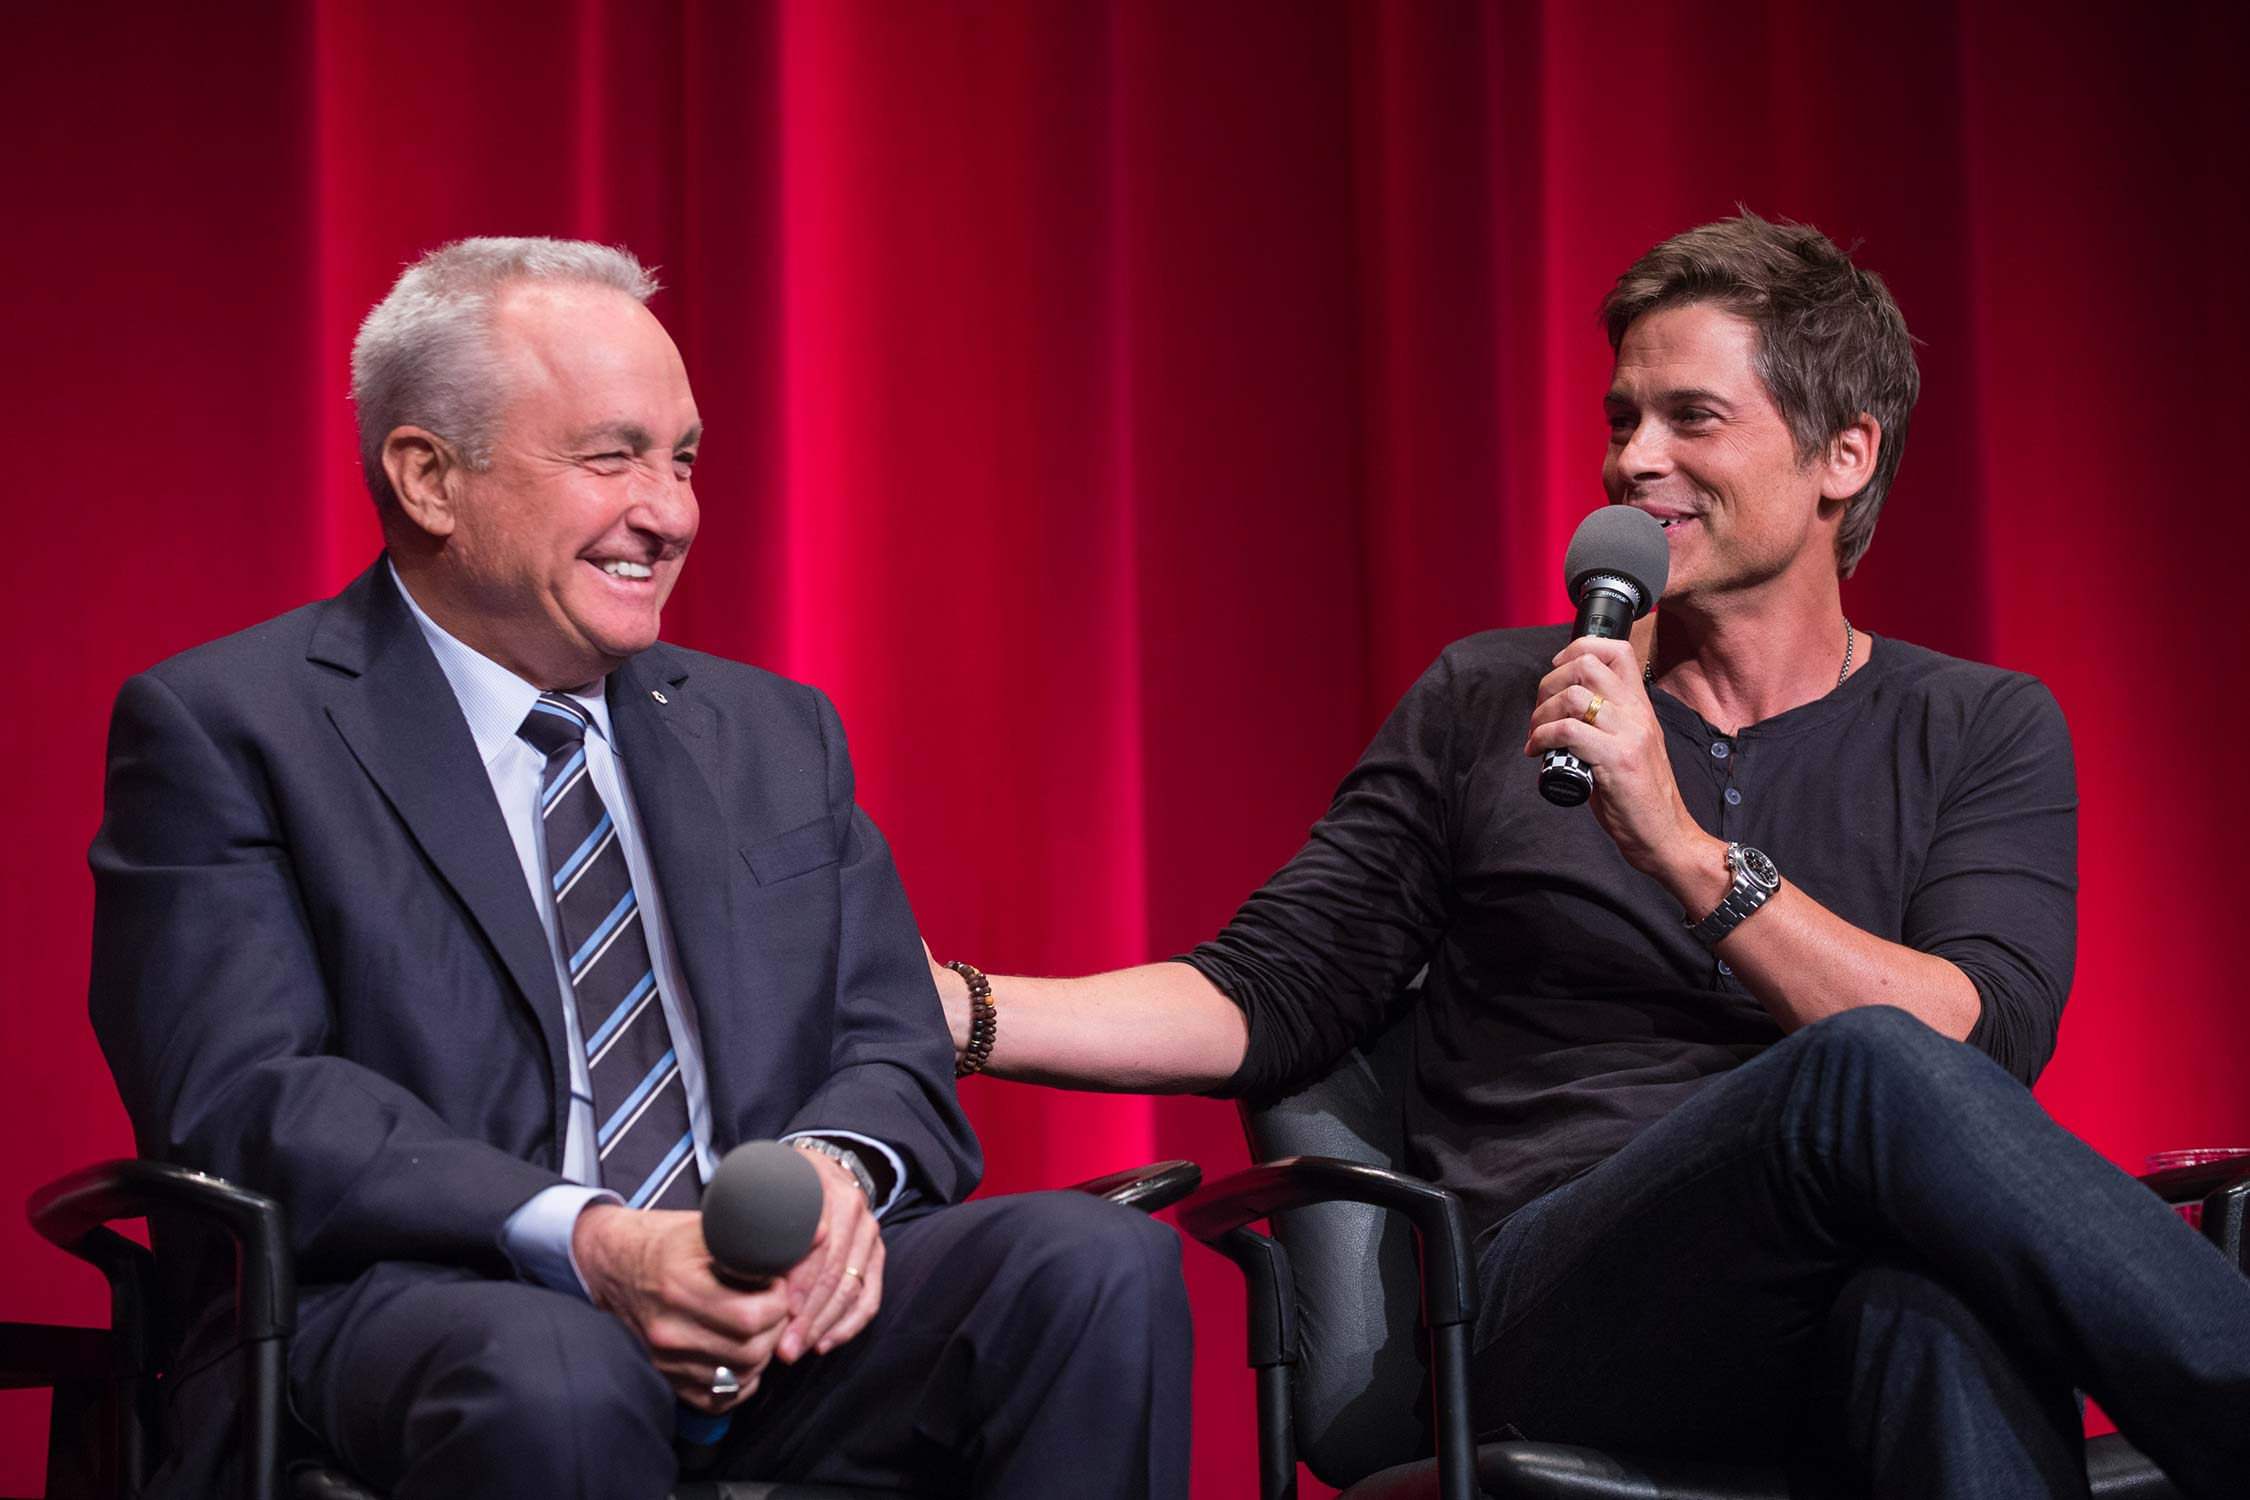 Lorne Michaels and Rob Lowe